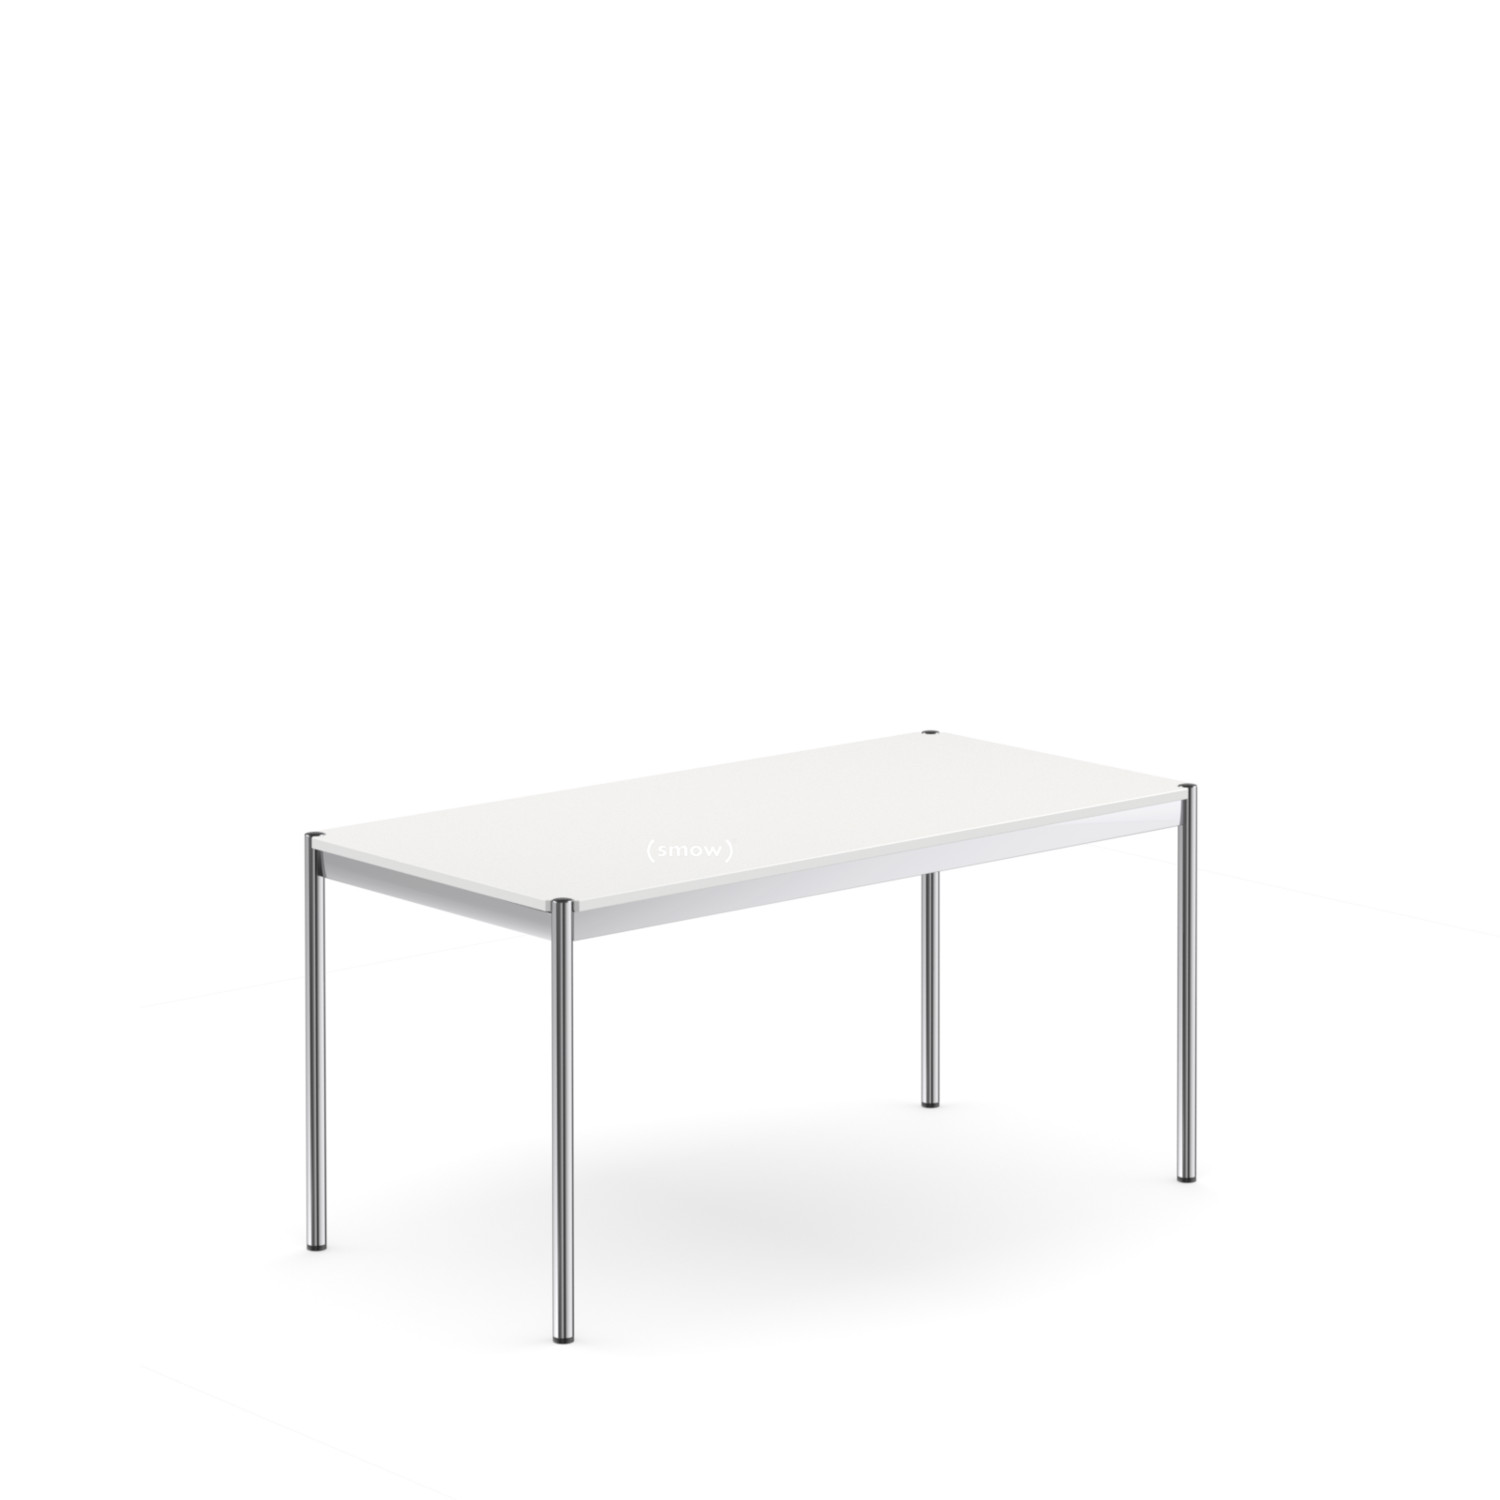 Usm haller table 75 x 150 cm mdf usm colours pure for Table 150 cm